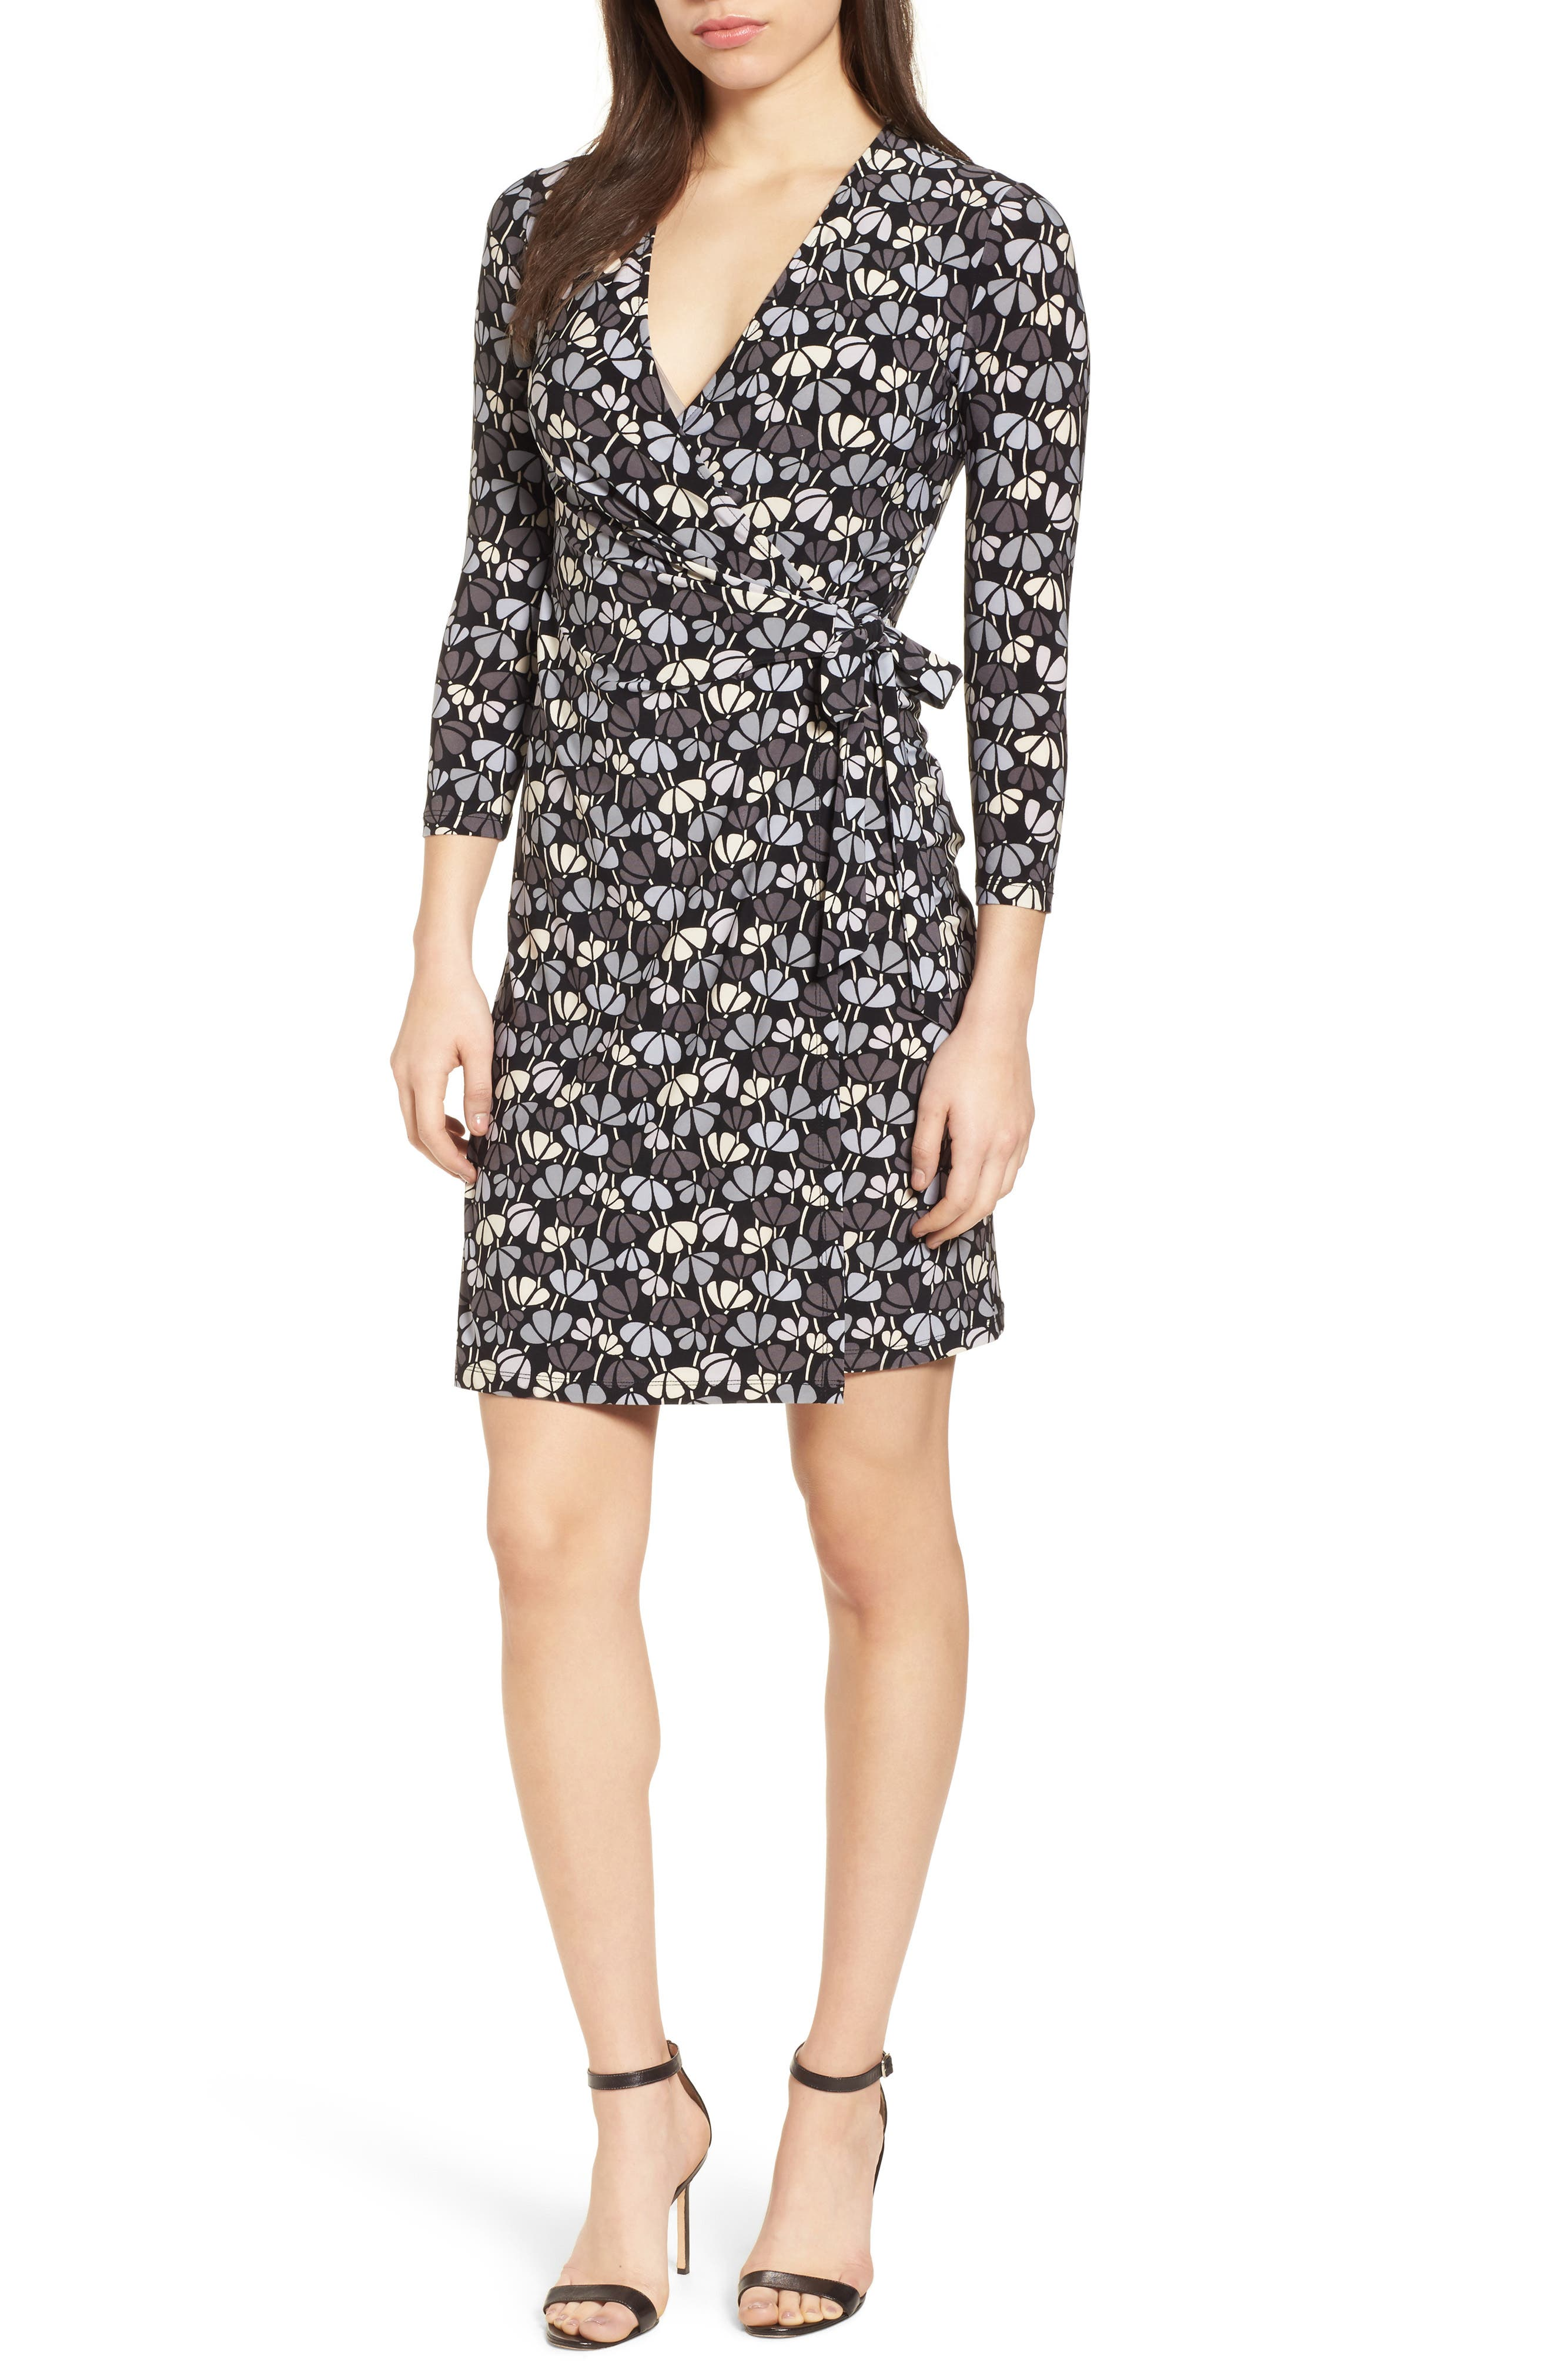 Anne Klein New York Flowerfall Faux Wrap Dress